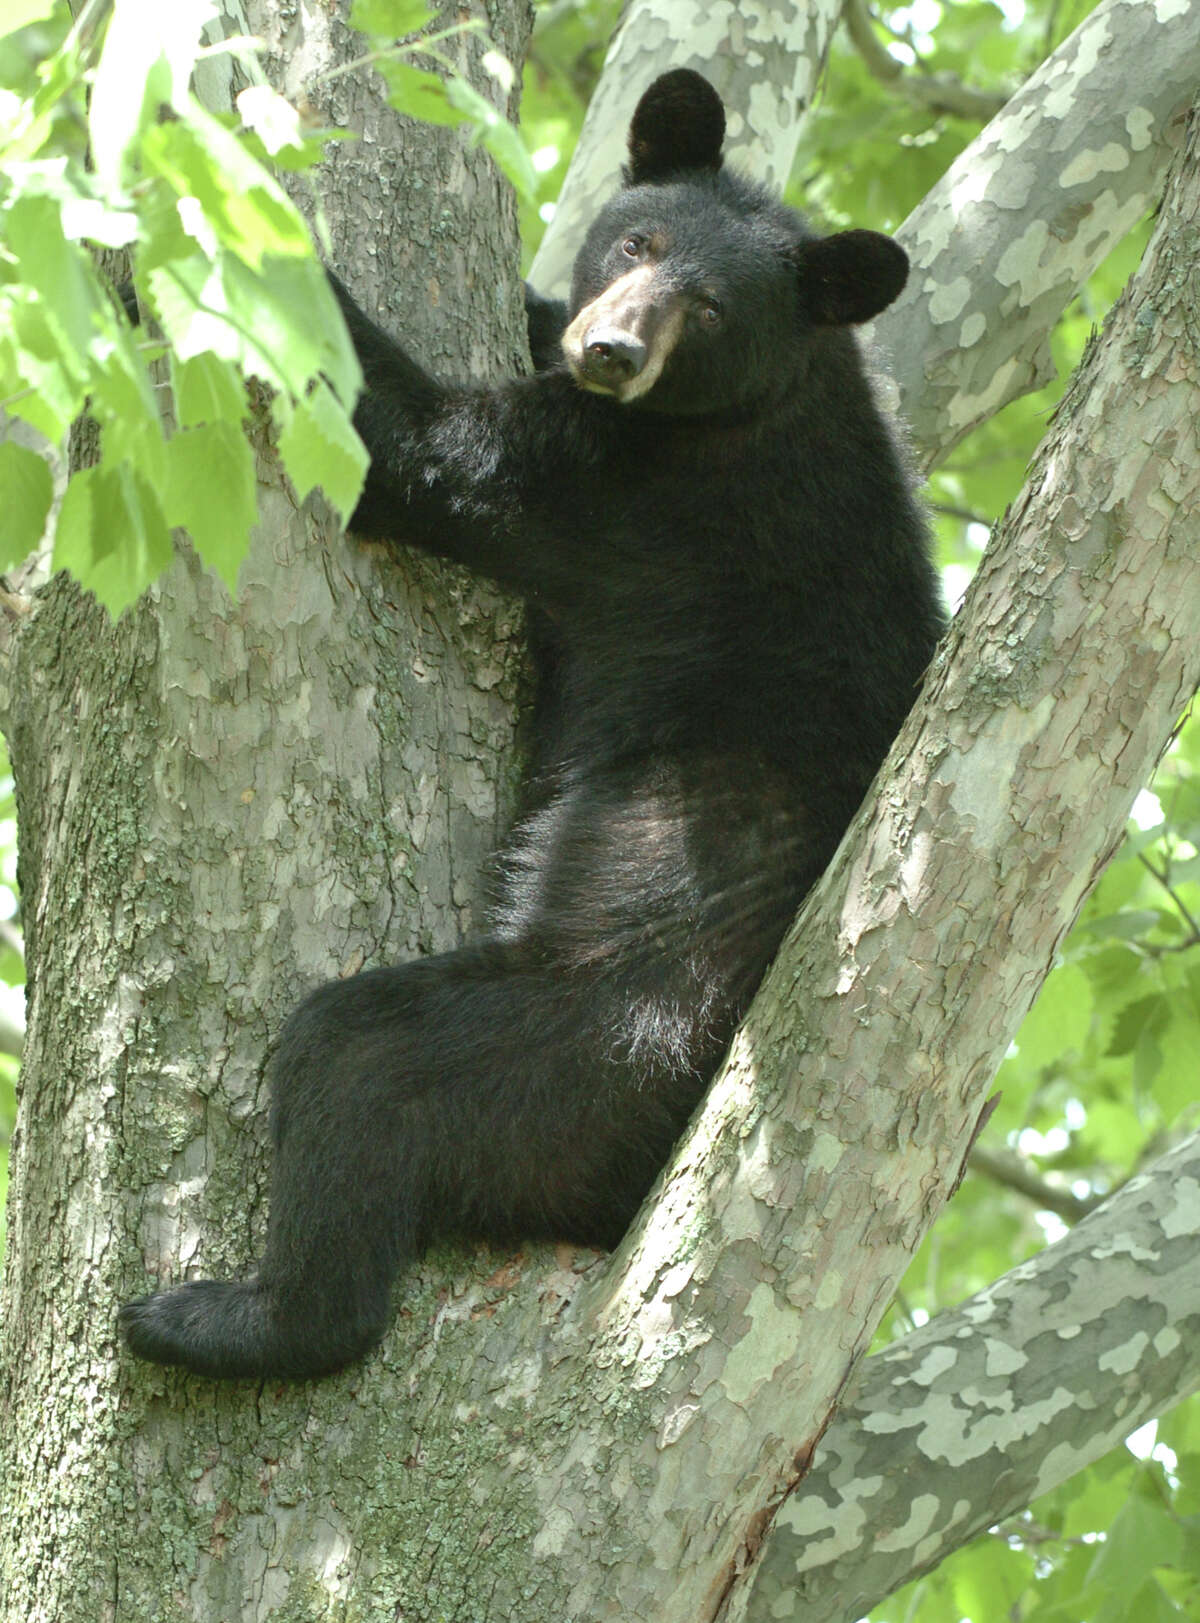 Times Union Staff Photo by Skip Dickstein A young black bear sits in a tree in the rear of 33 John David Lane in Albany, New York May 27, 2004. He climbed the tree to avoid the humans that awaited him on the ground below the tree. ENCON officers were called to tranquilize the bear and remove him from the tree.